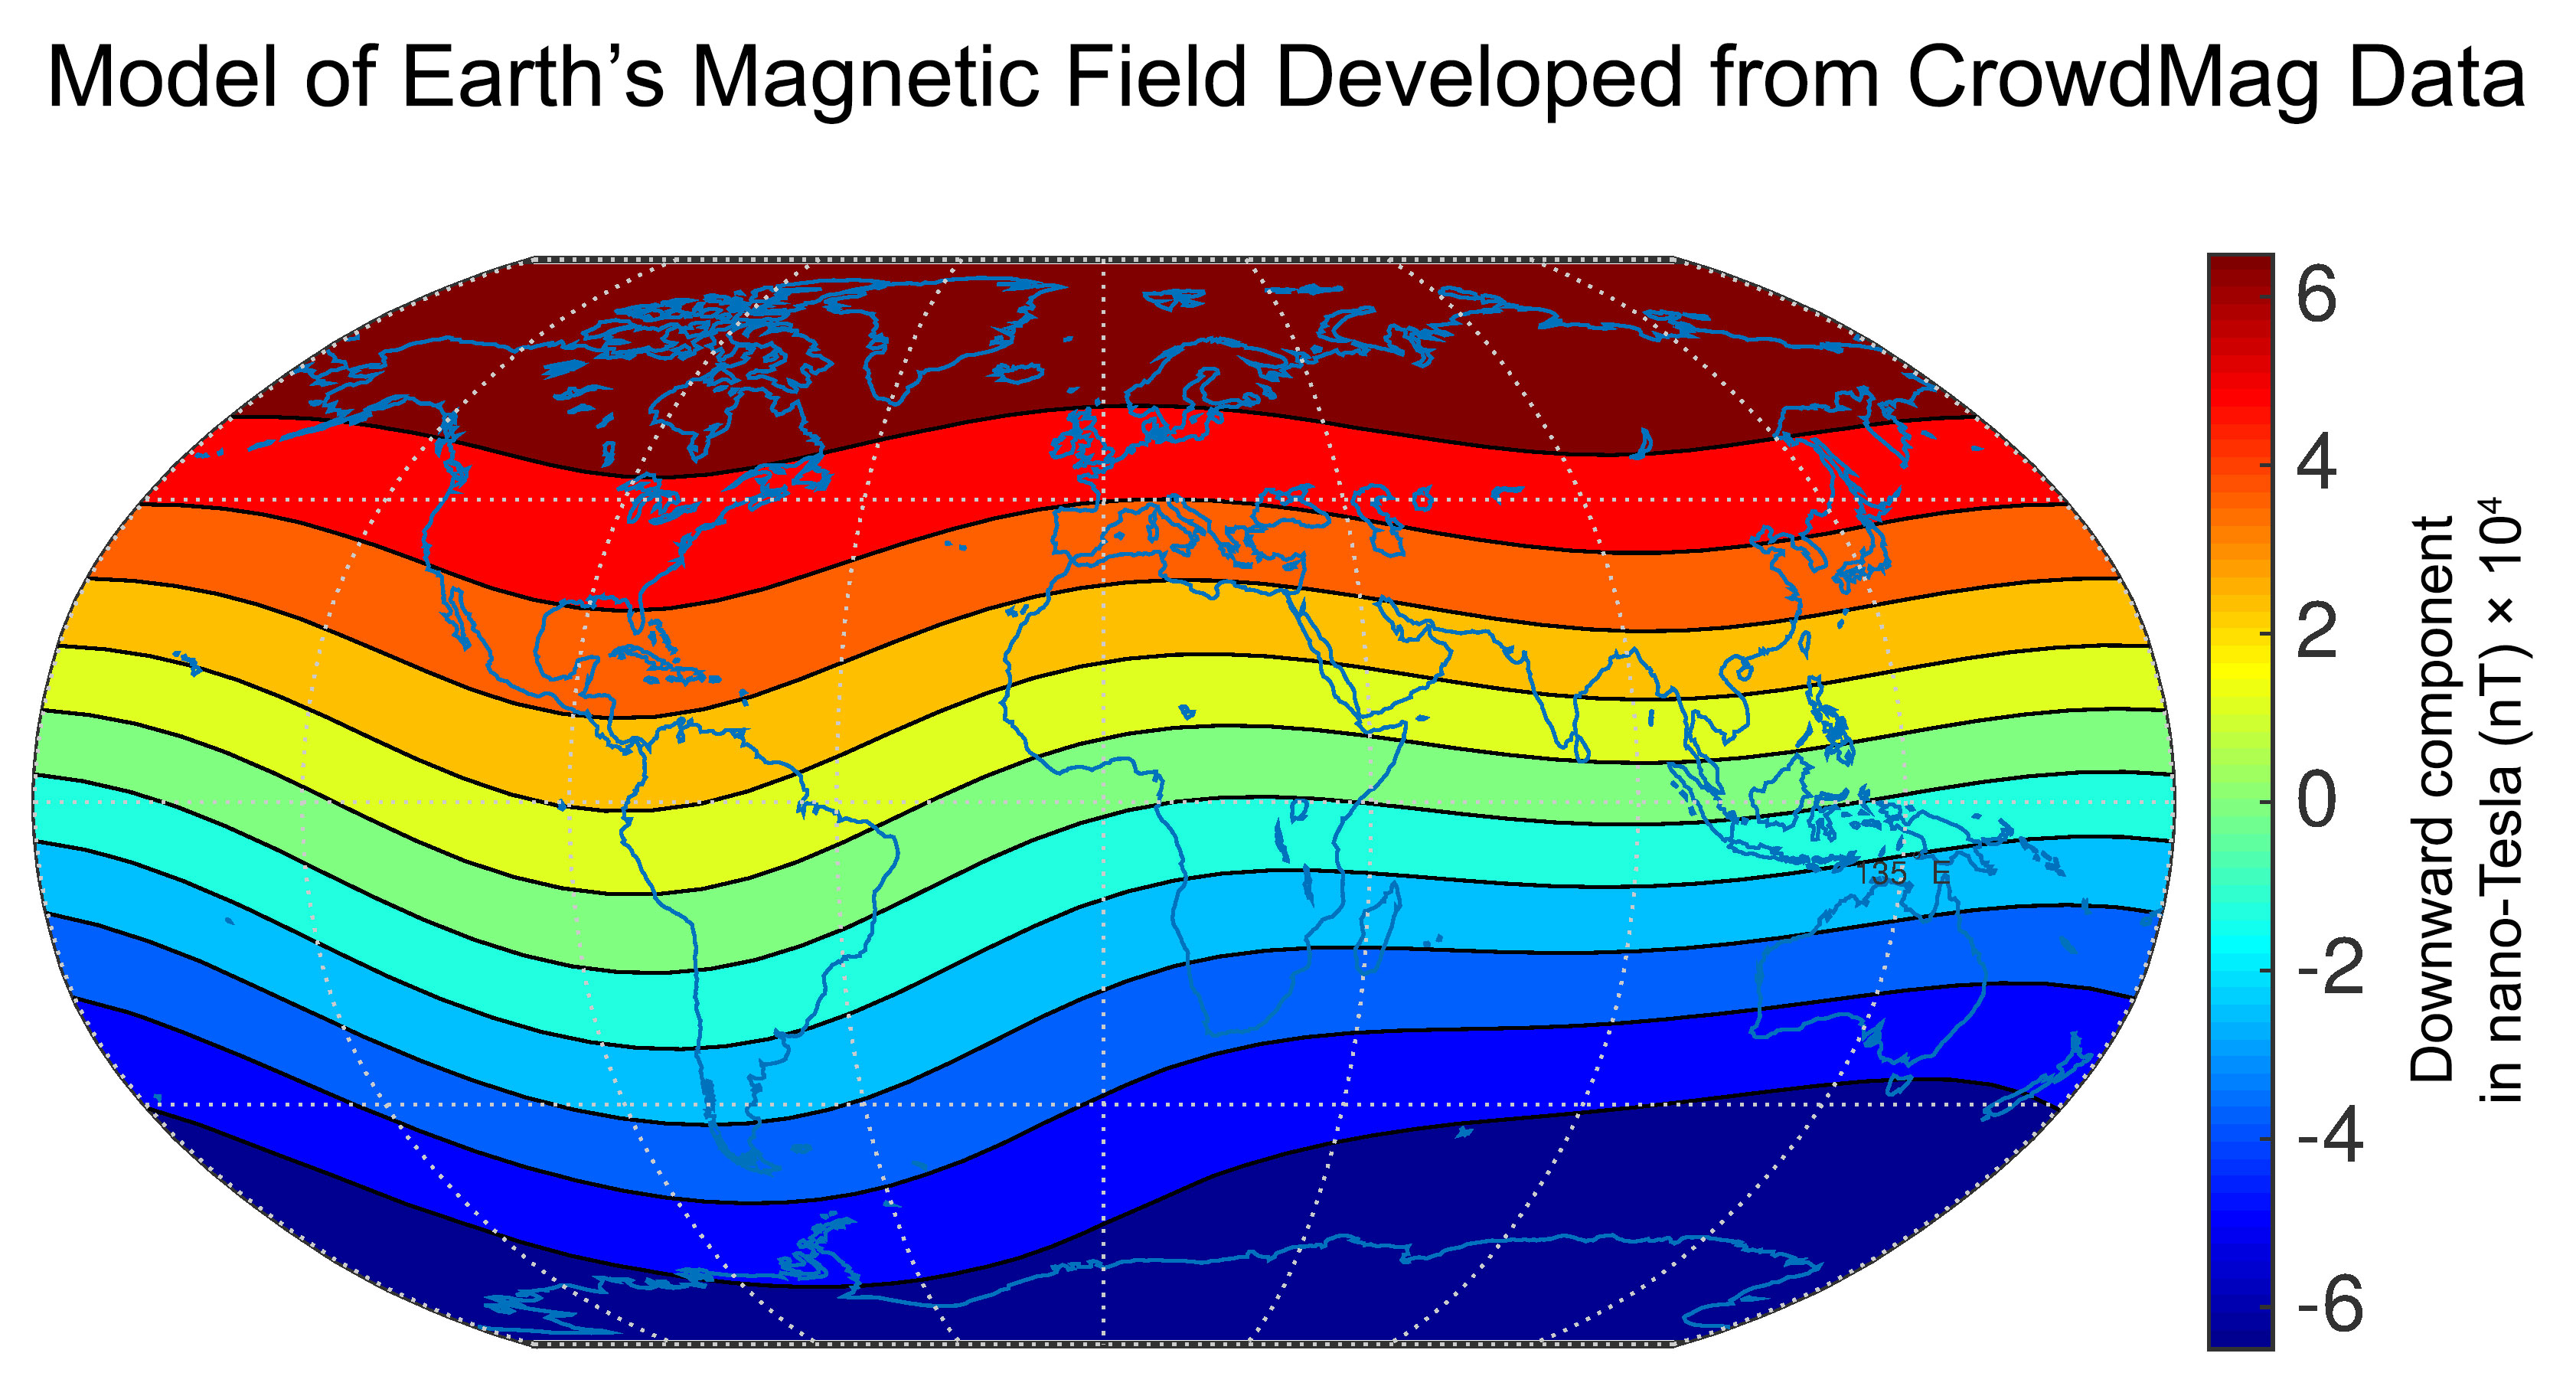 Earth's magnetic model developed using CrowdMag data